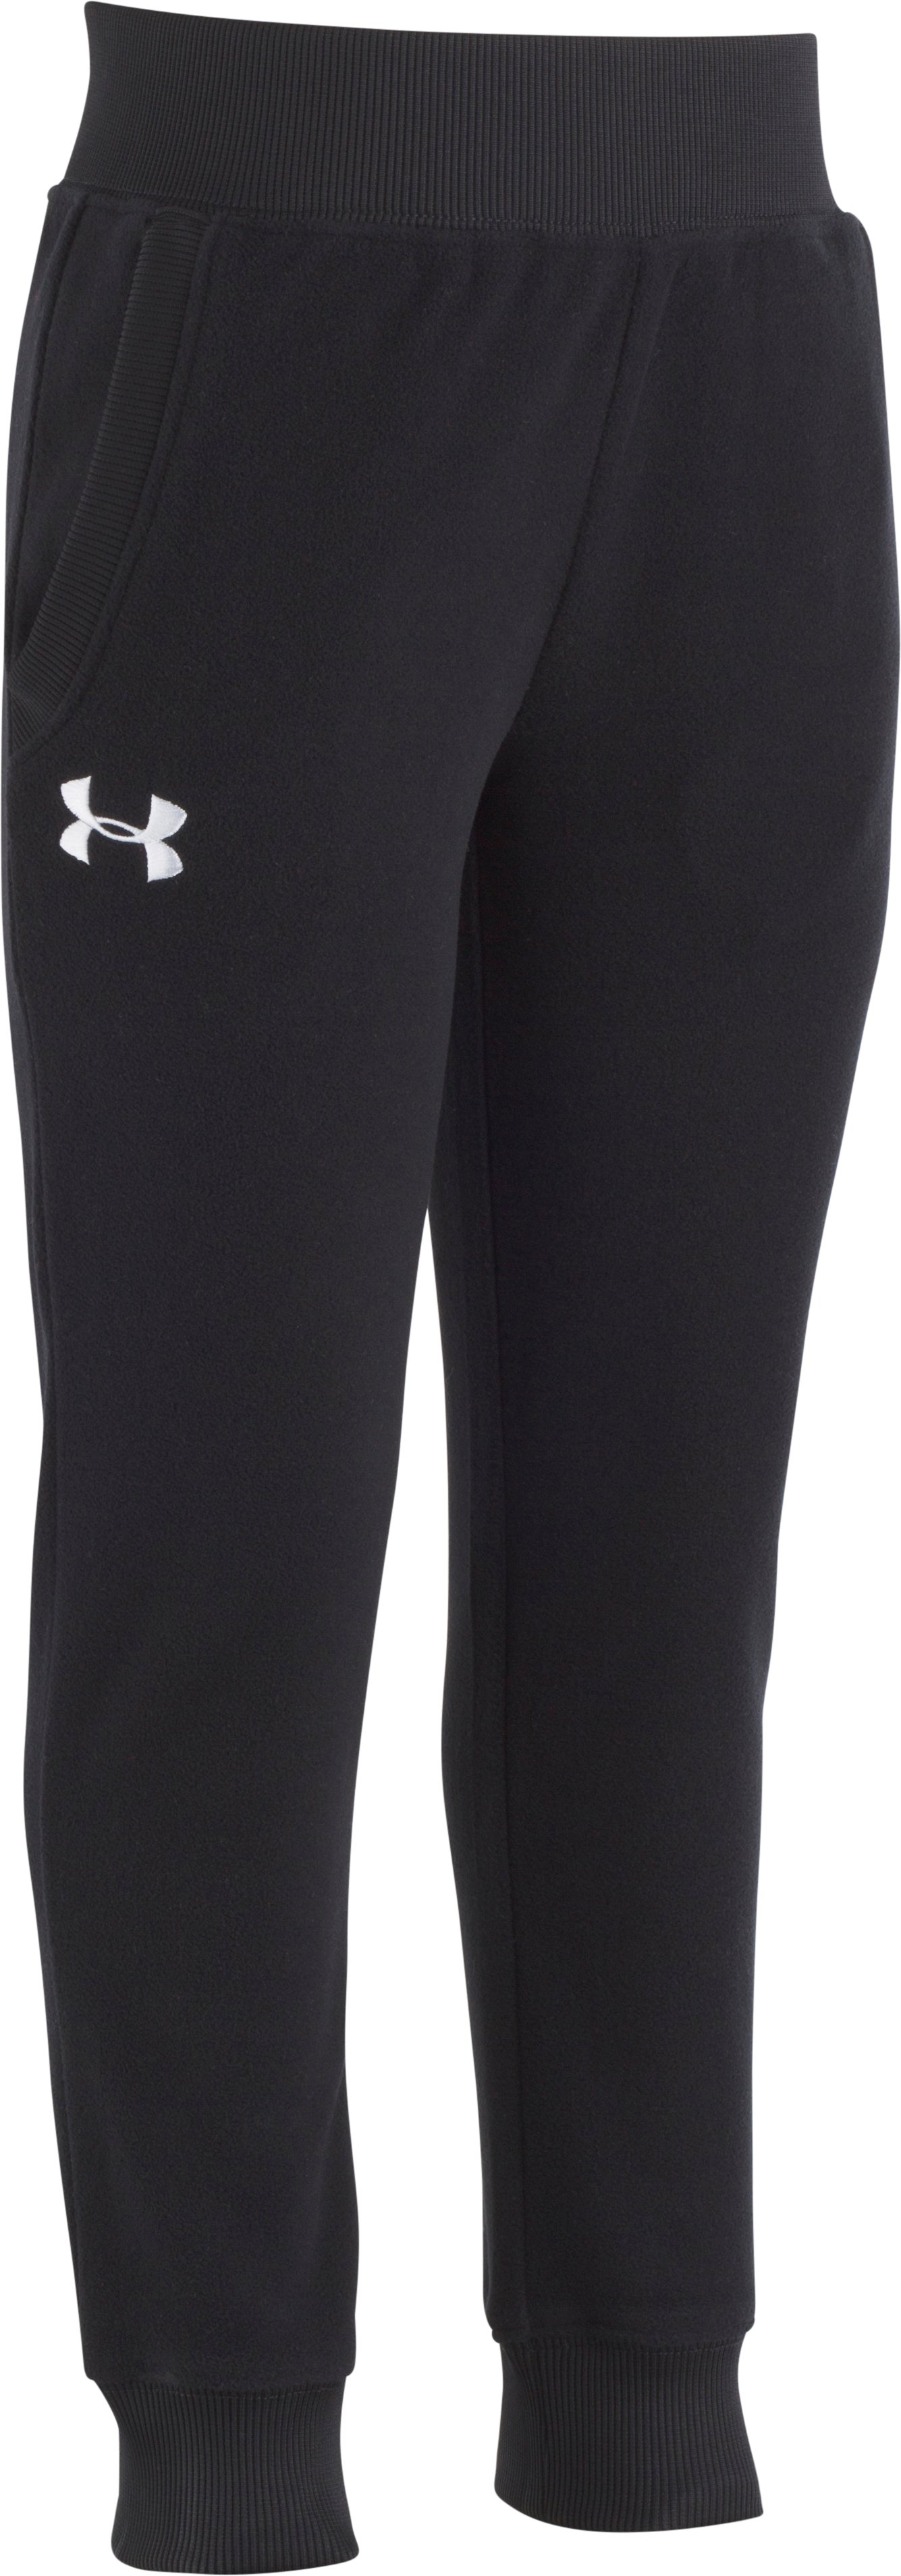 Girls Pre-School UA Hundo Joggers, Black